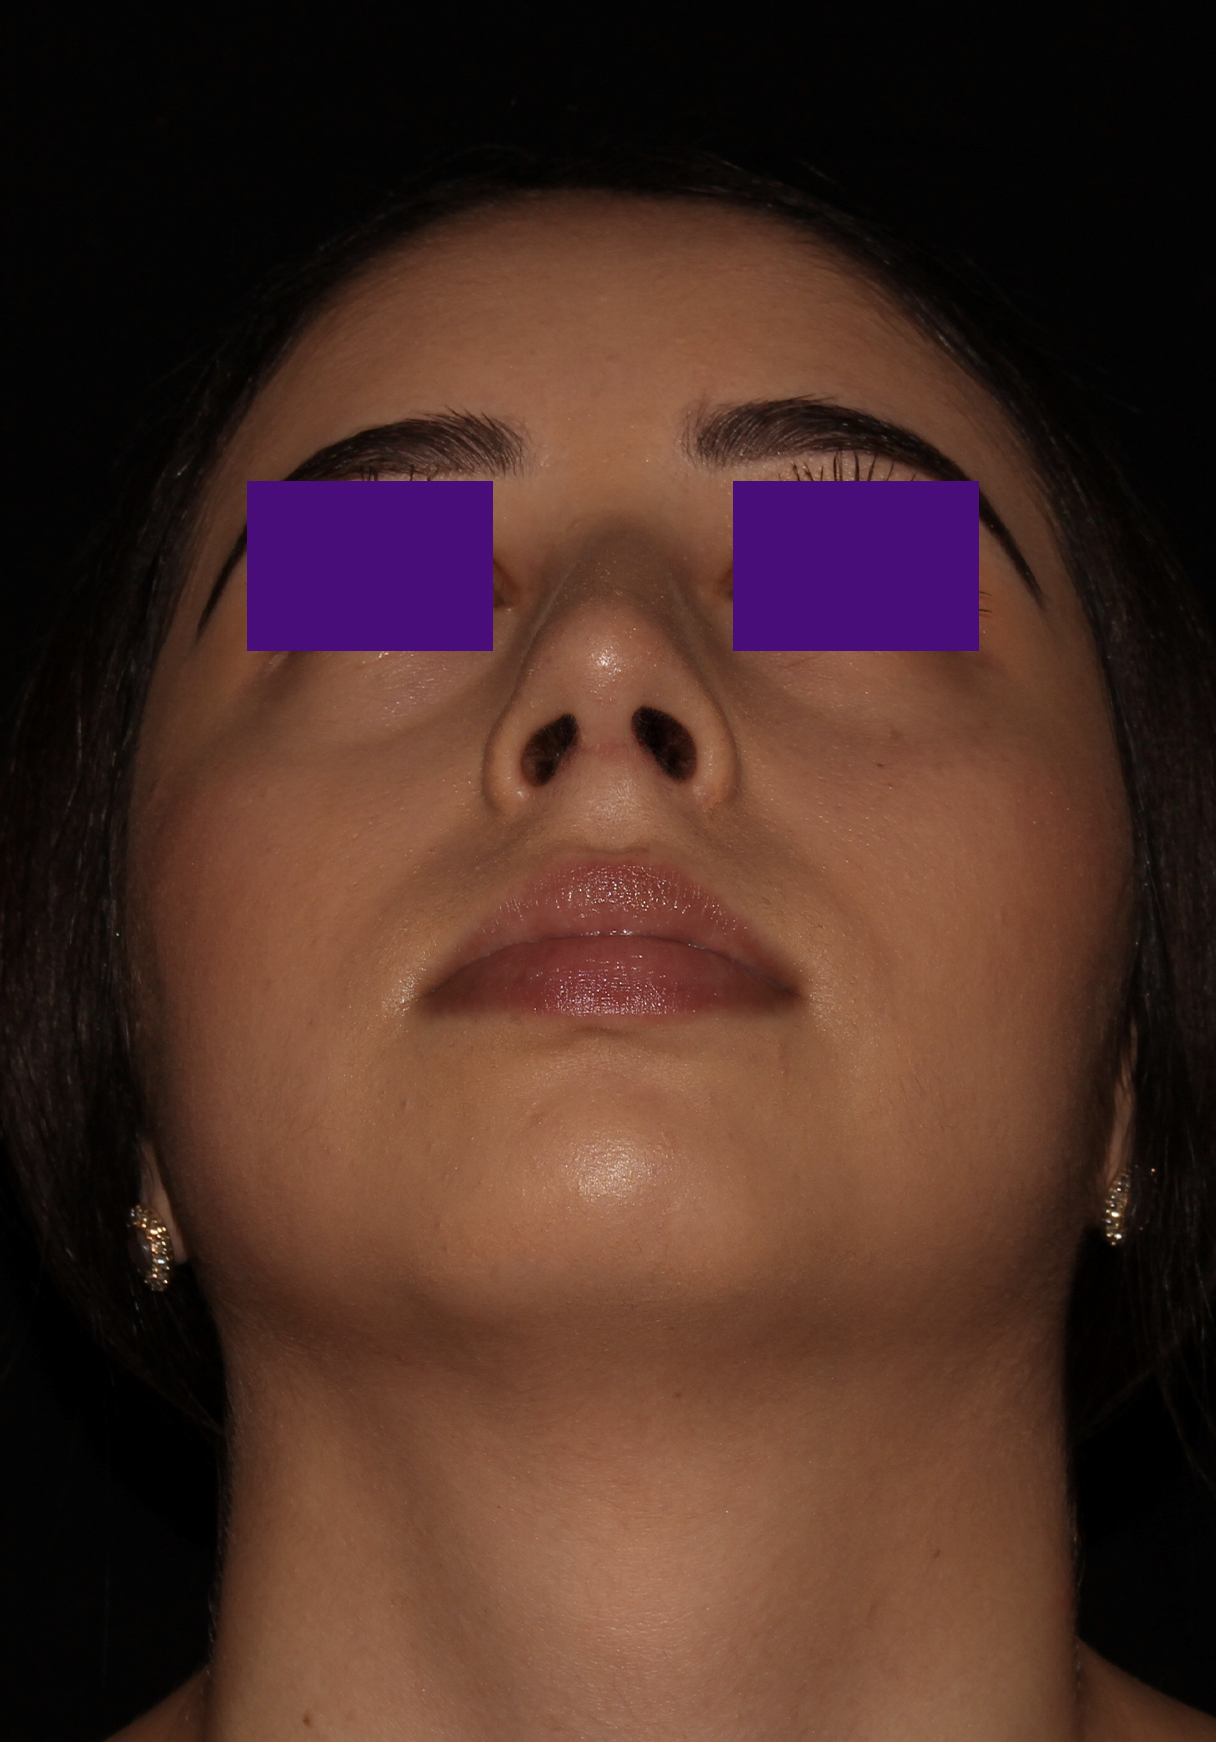 After Rhinoplasty - Septoplasty to correct a deviated septum